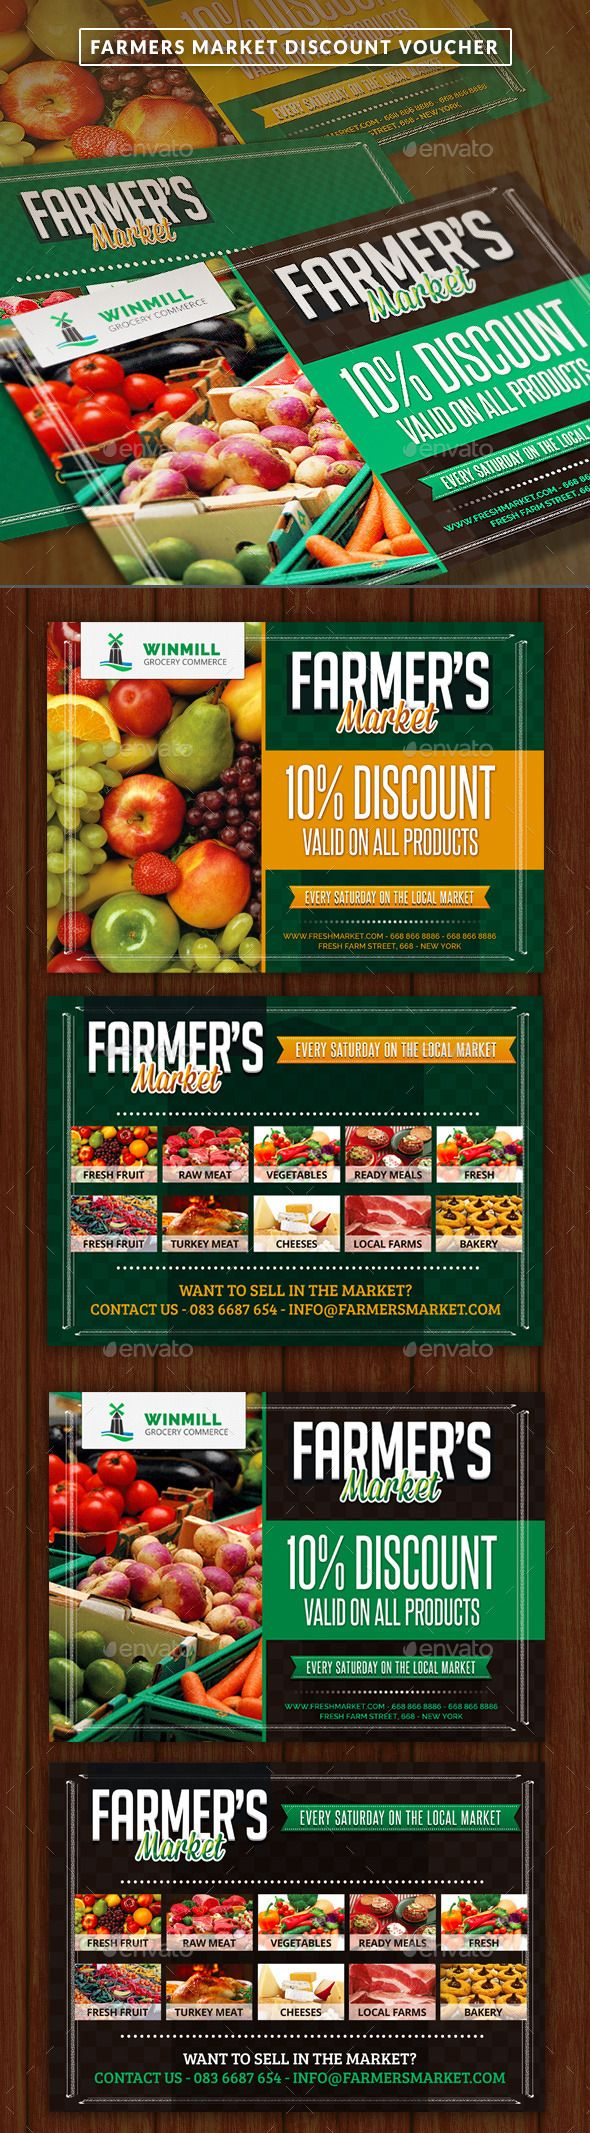 Farmer's Market Commerce Discount Voucher Template #design Download: http://graphicriver.net/item/farmers-market-commerce-discount-voucher/12156198?ref=ksioks